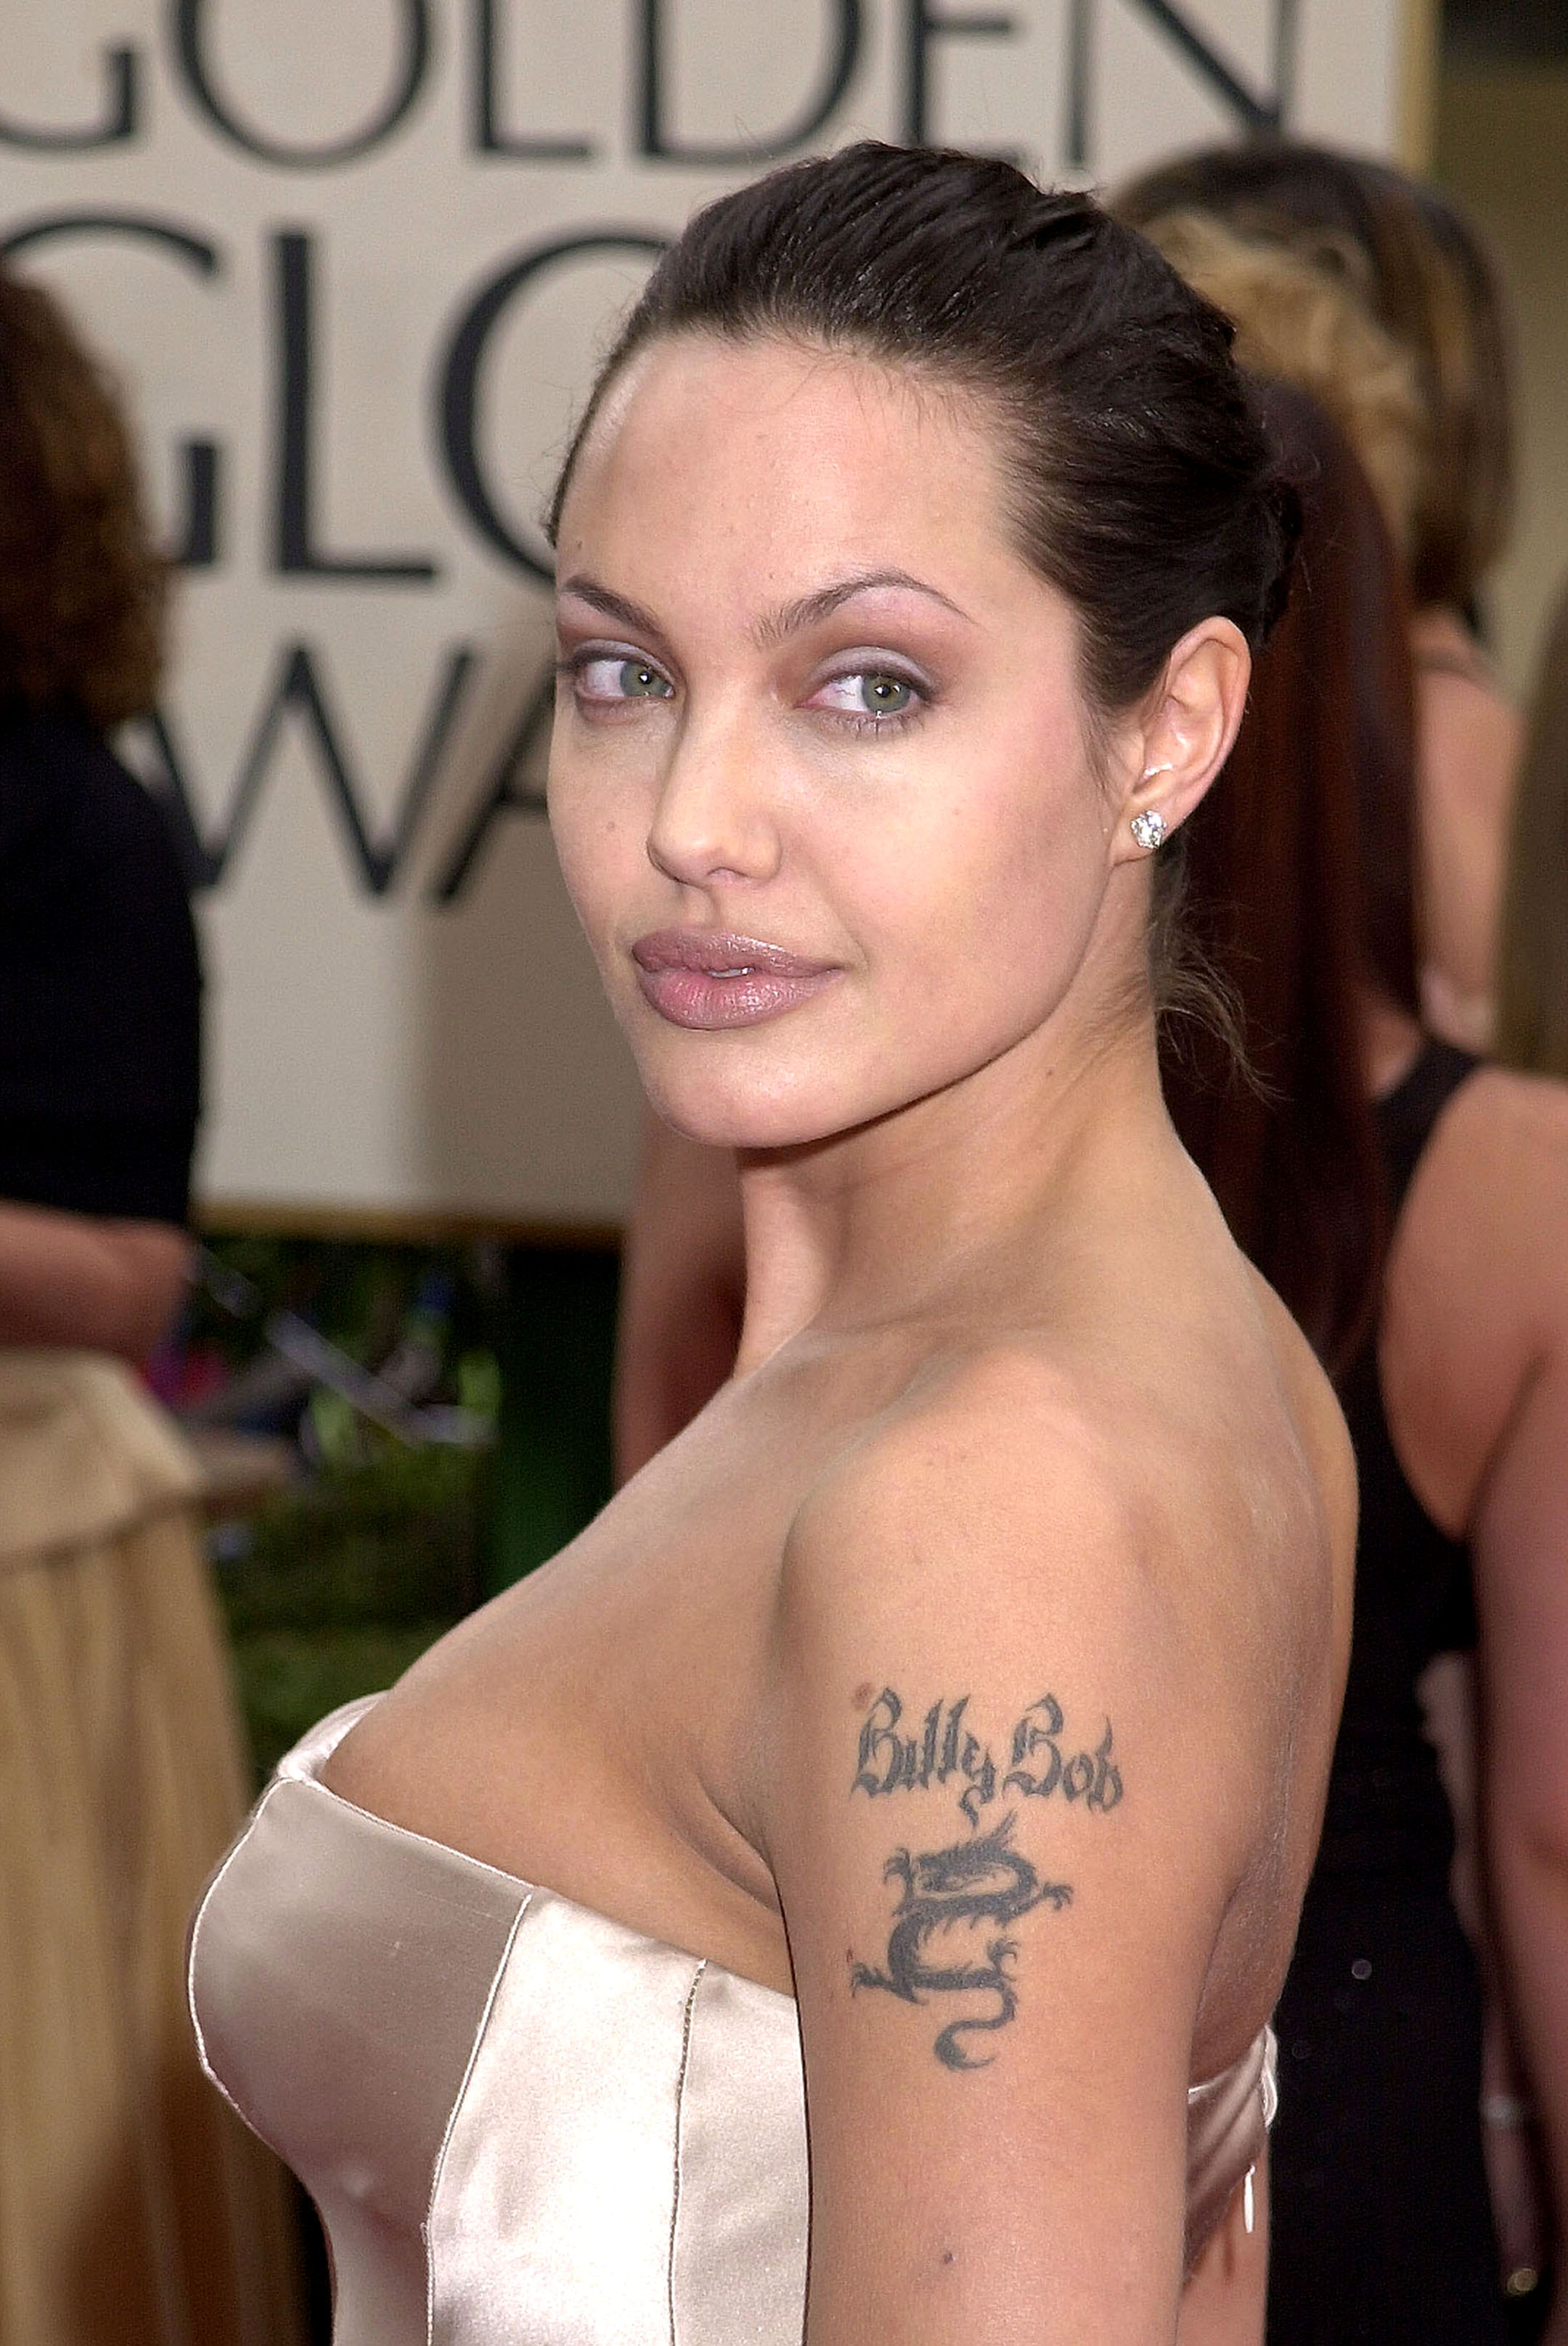 Angelina Jolie at the Beverly Hilton Hotel in Beverly Hills, California.